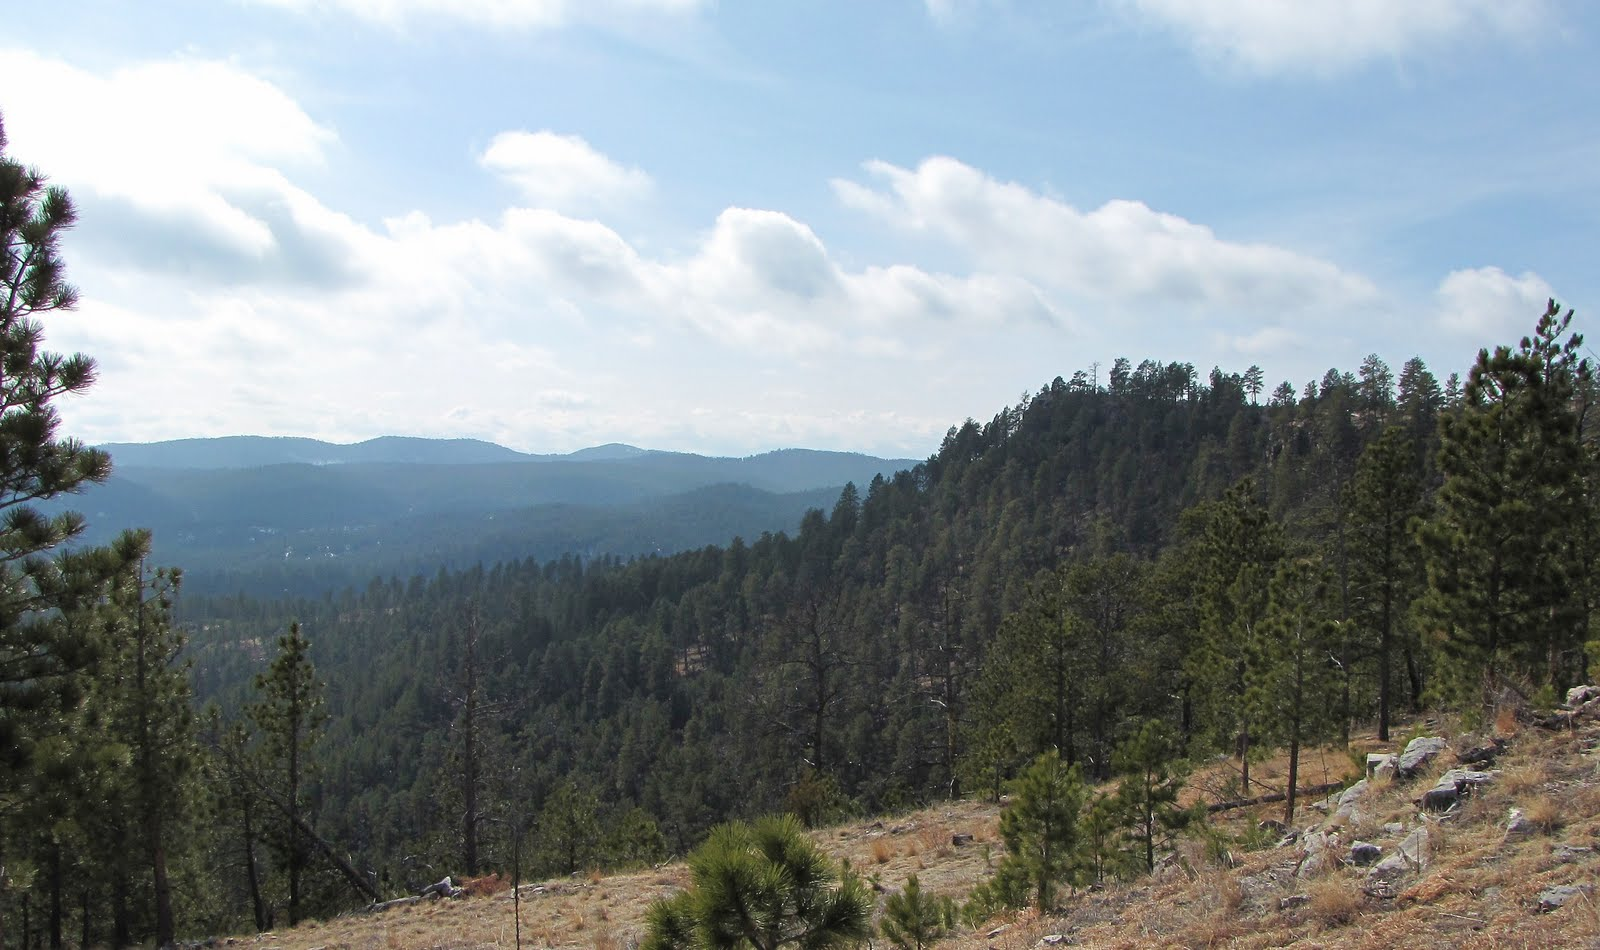 hiking and black hills The black hills are full of monumental works of both man and nature, evident too in the world-class hiking, biking, motorized and non-motorized trail offerings one can find here.